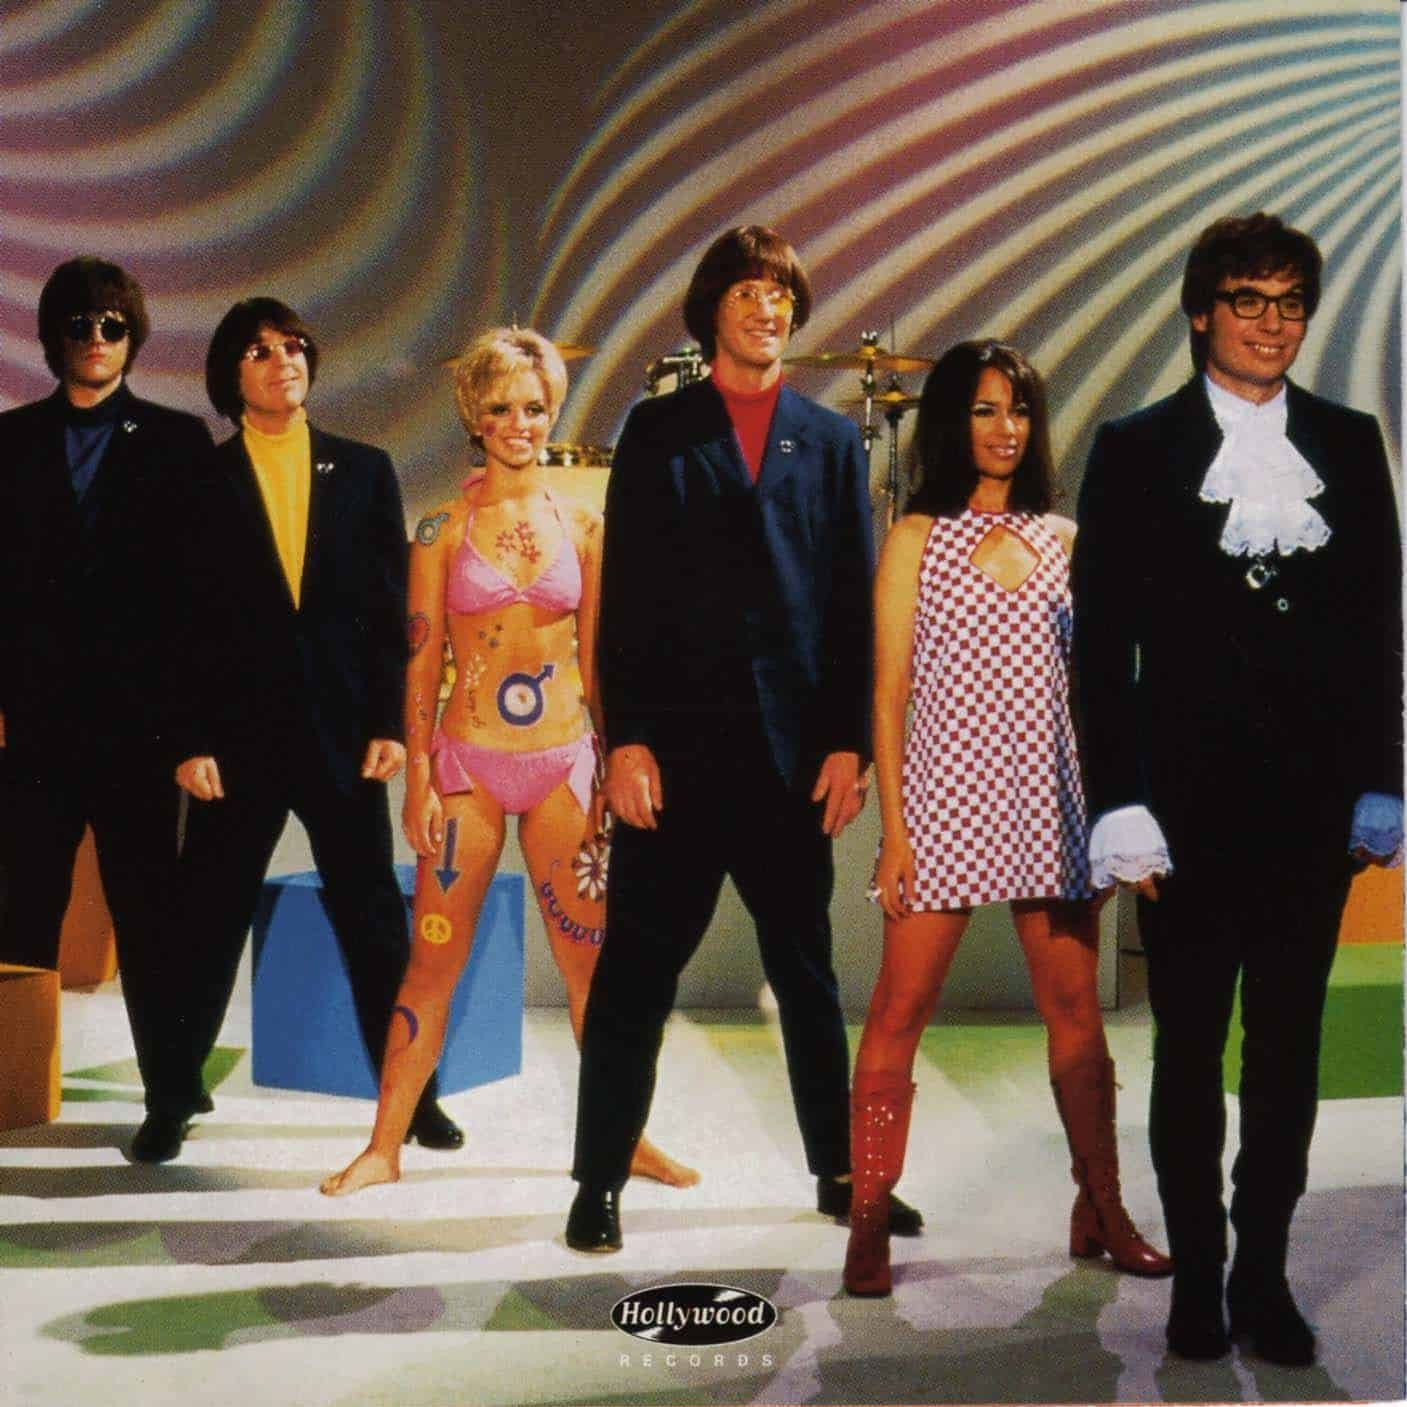 8cbae5f05a991d20bd0ea11e94d4f5da e1572273972258 20 Groovy Truths You Probably Never Realized About Austin Powers: International Man Of Mystery!